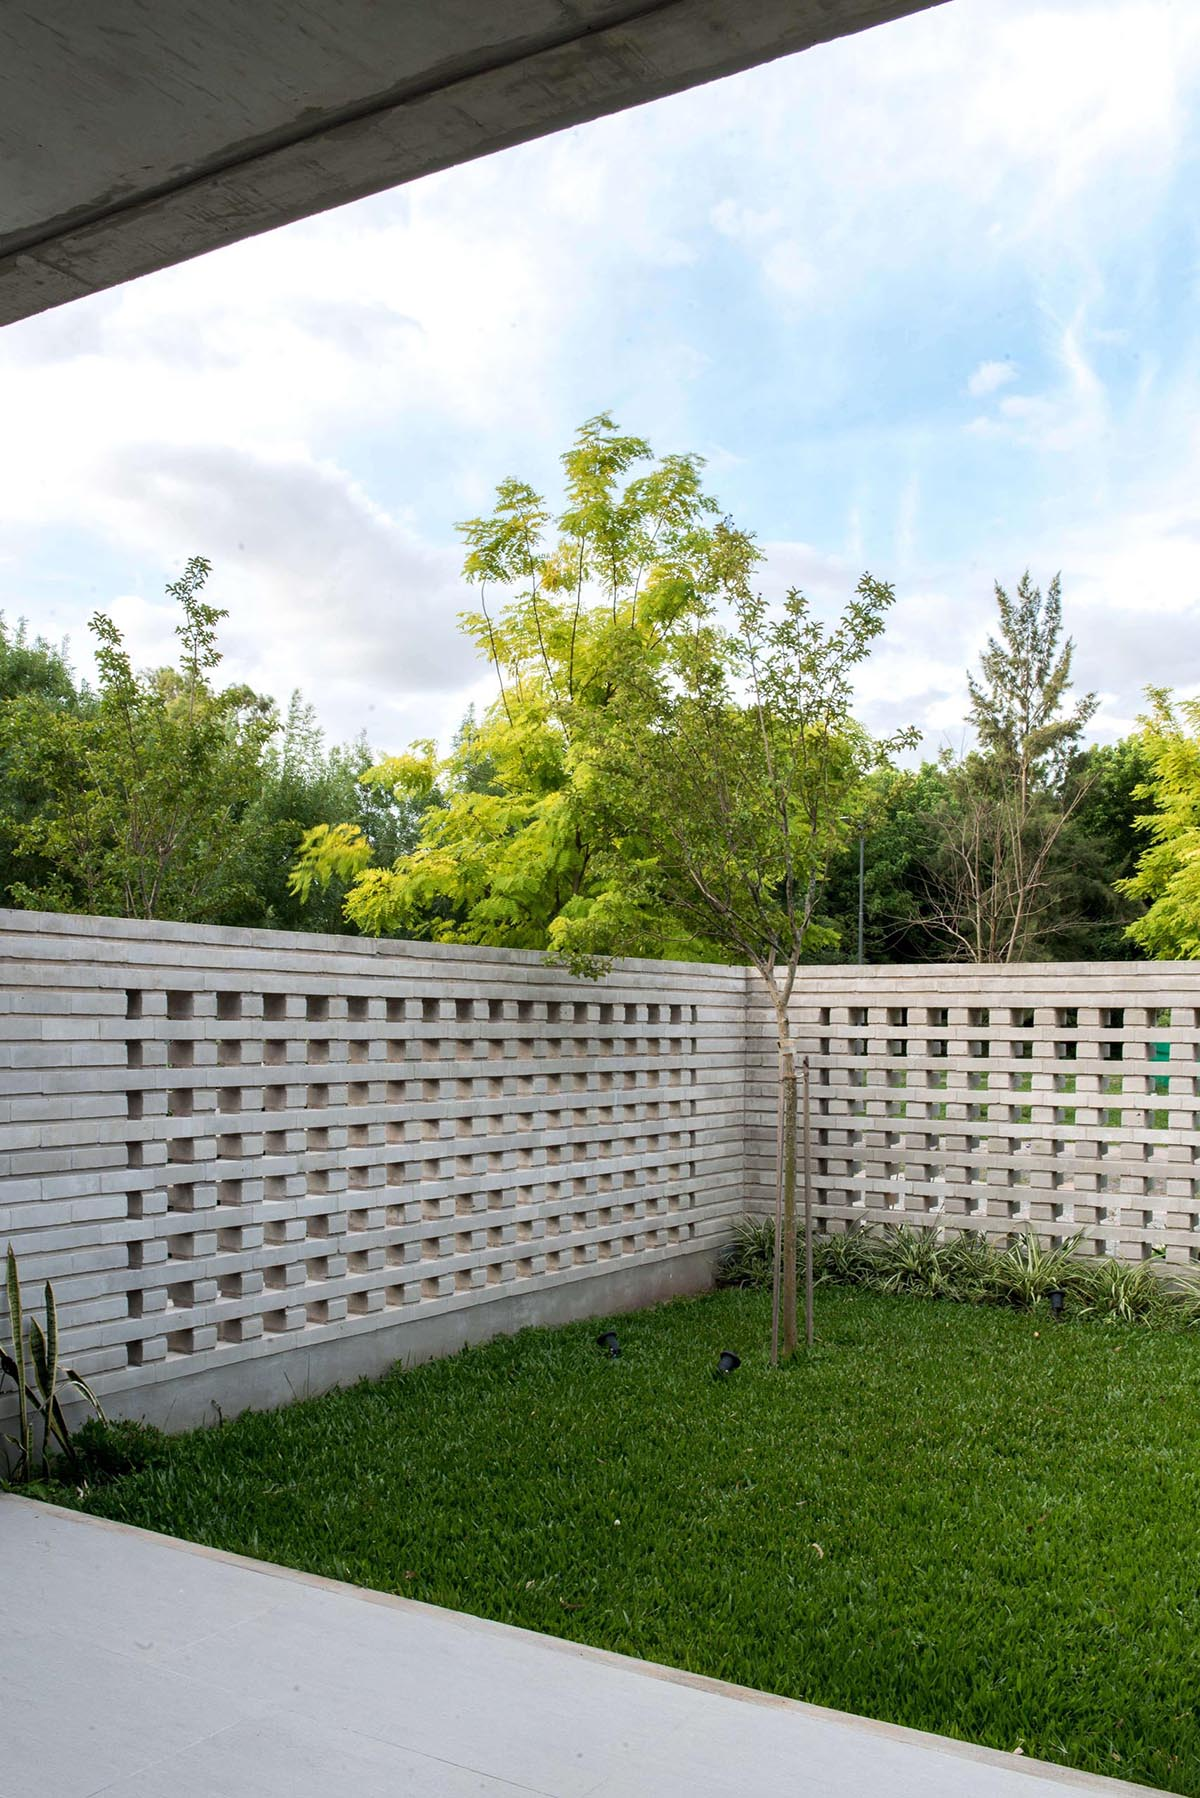 A closeup look at a modern concrete block fence that provides privacy for a home.